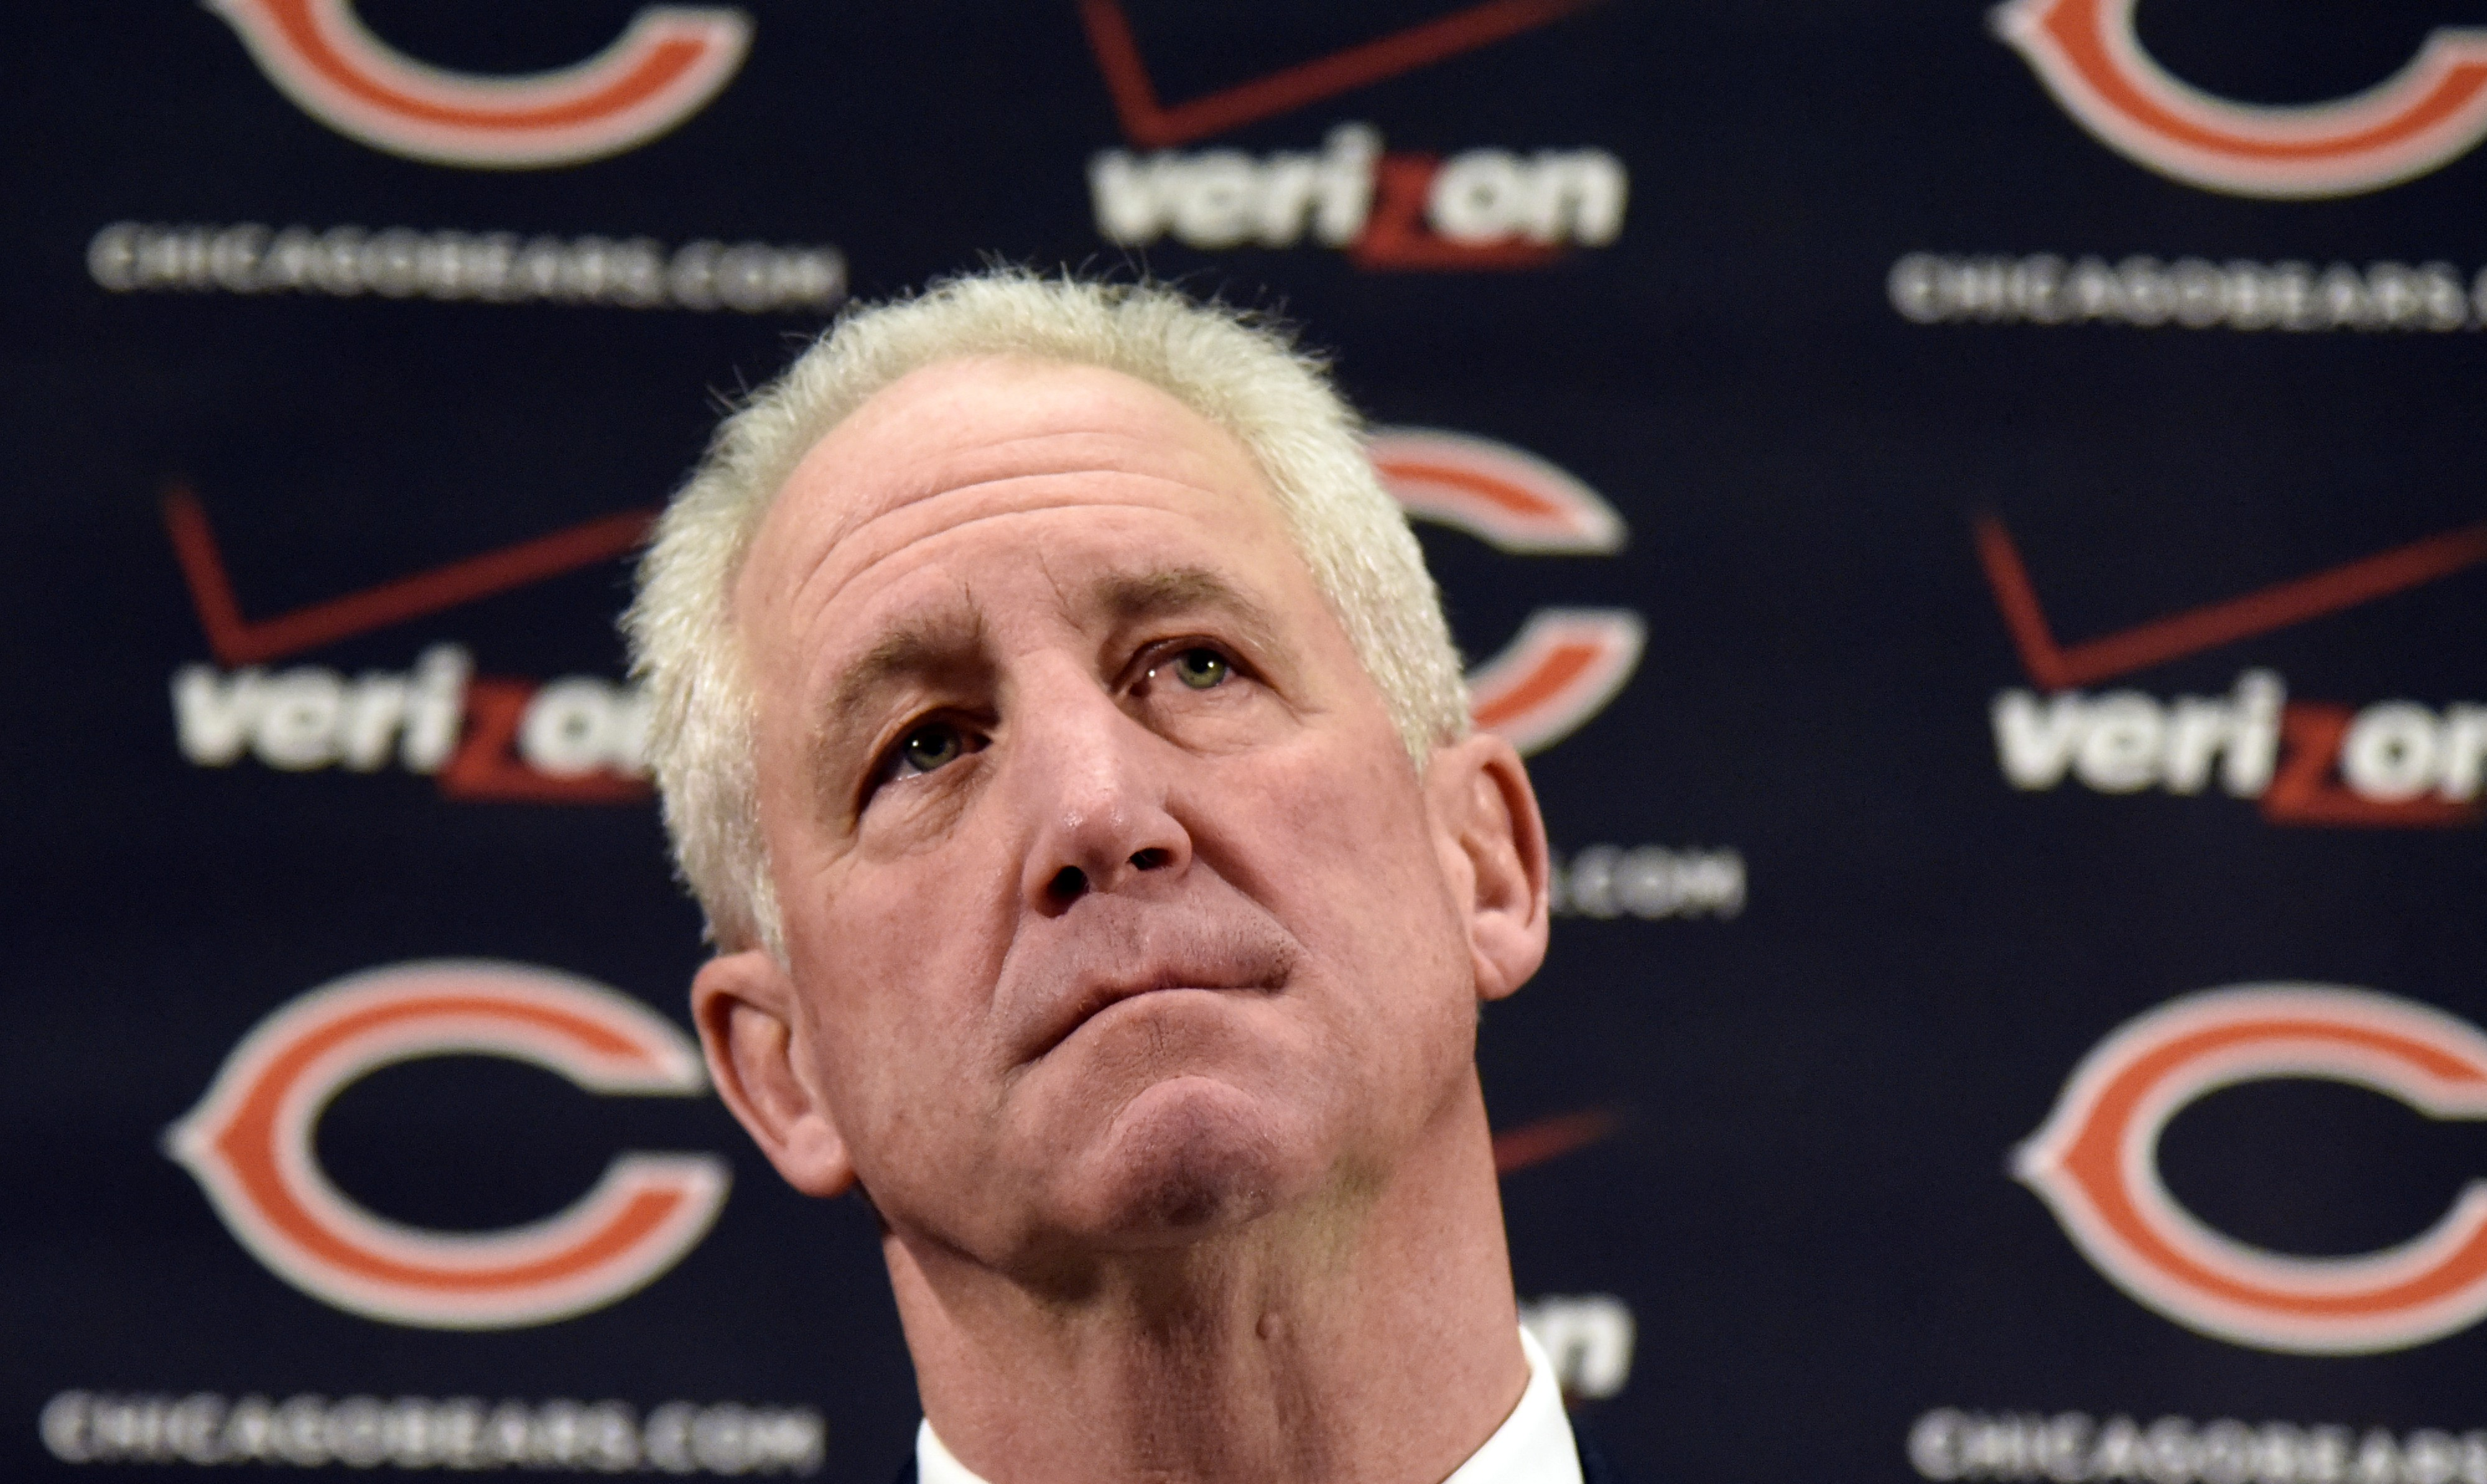 http://chicago.cbslocal.com/2015/05/14/usa-today-ranks-bears-dead-last-in-its-offseason-power-rankings/